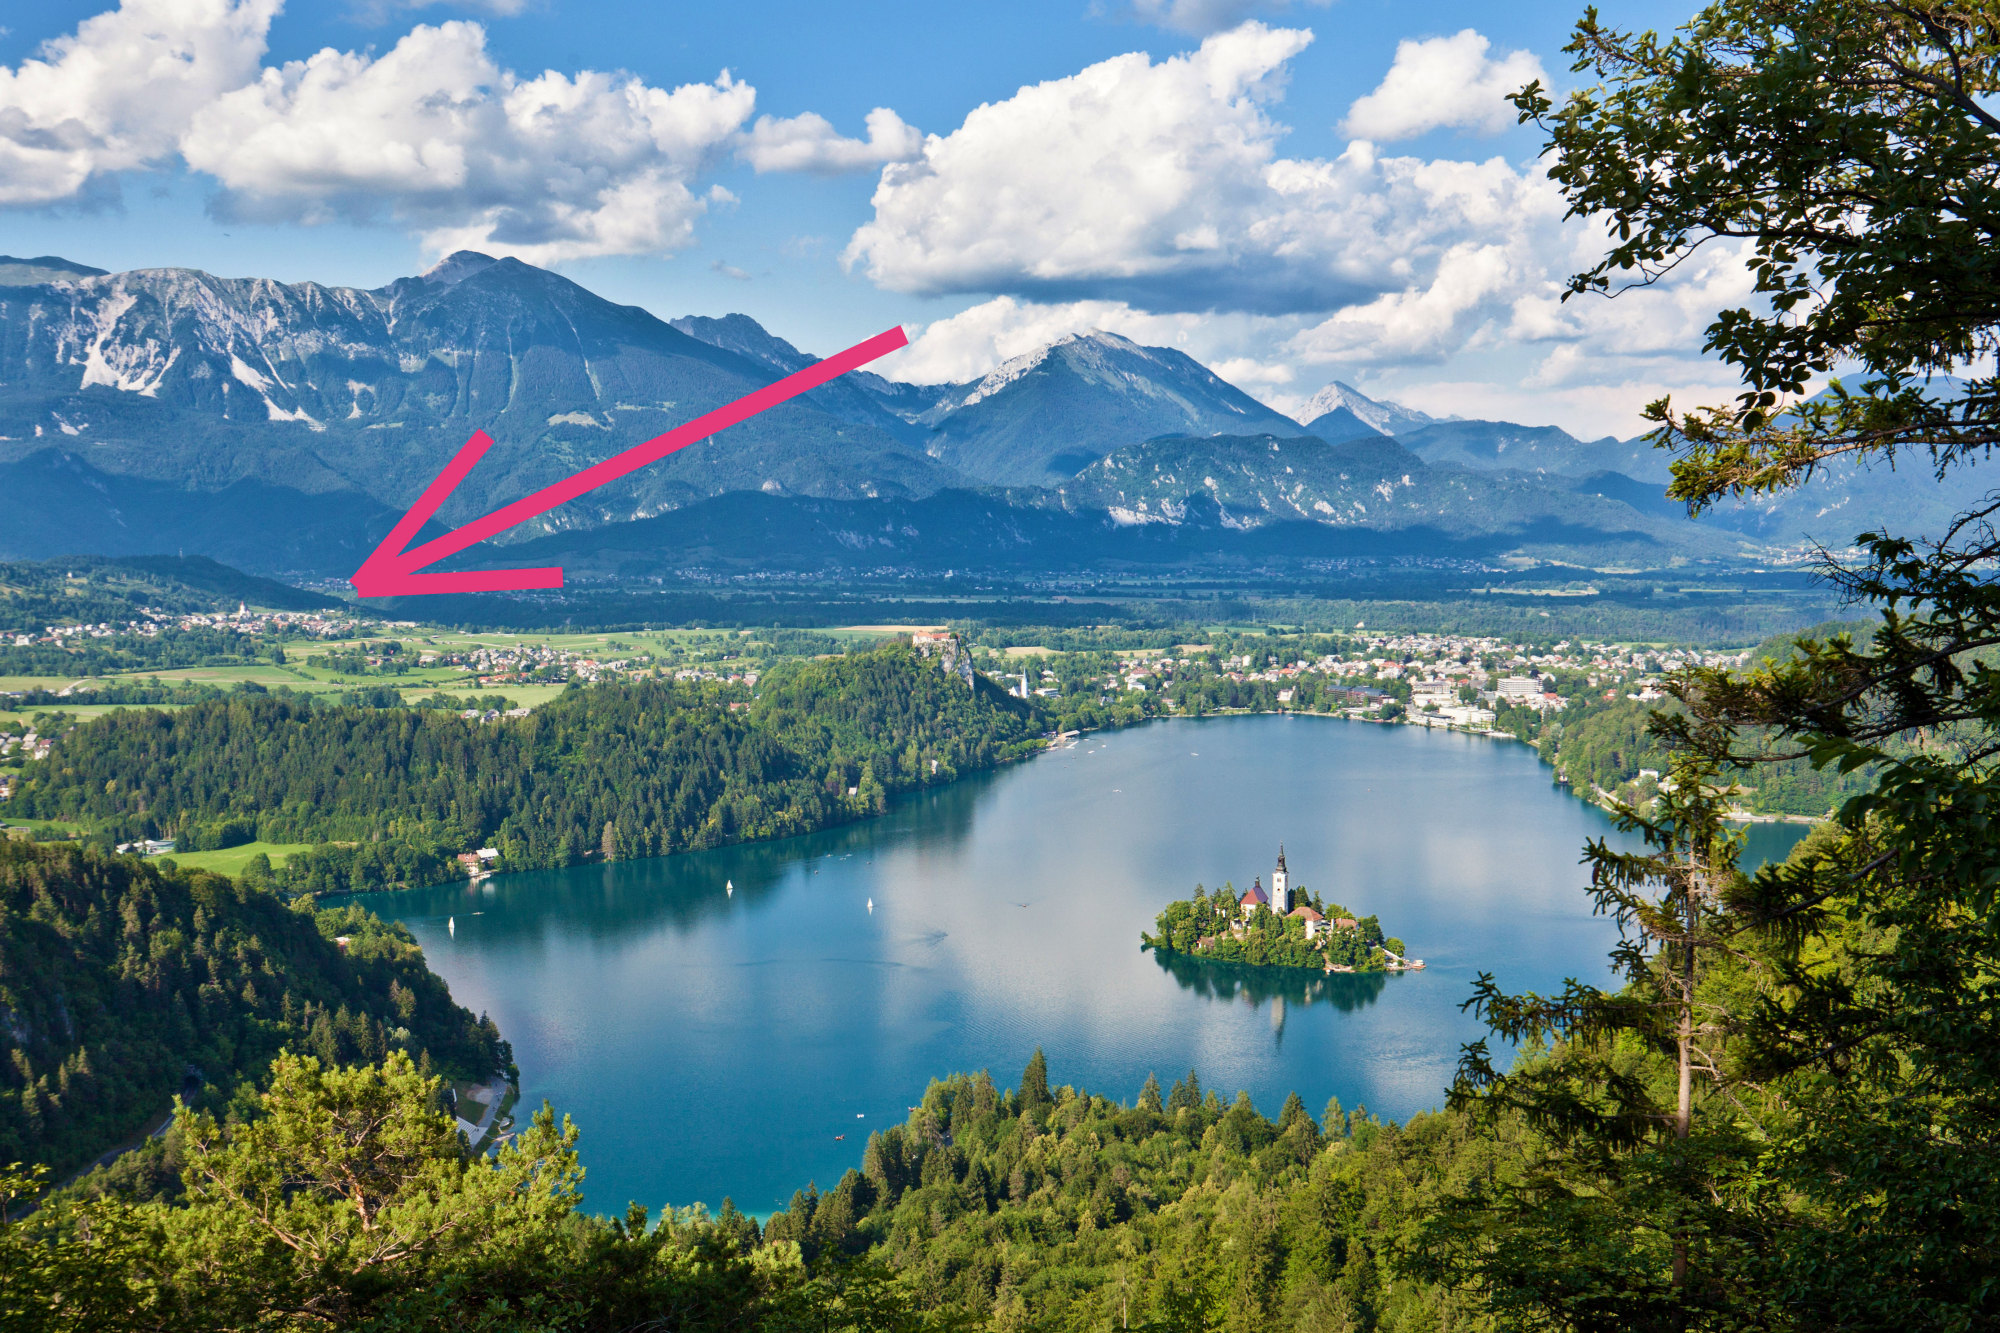 Lake Bled and the location of Apartments Fine Stay in the Bled area of Slovenia